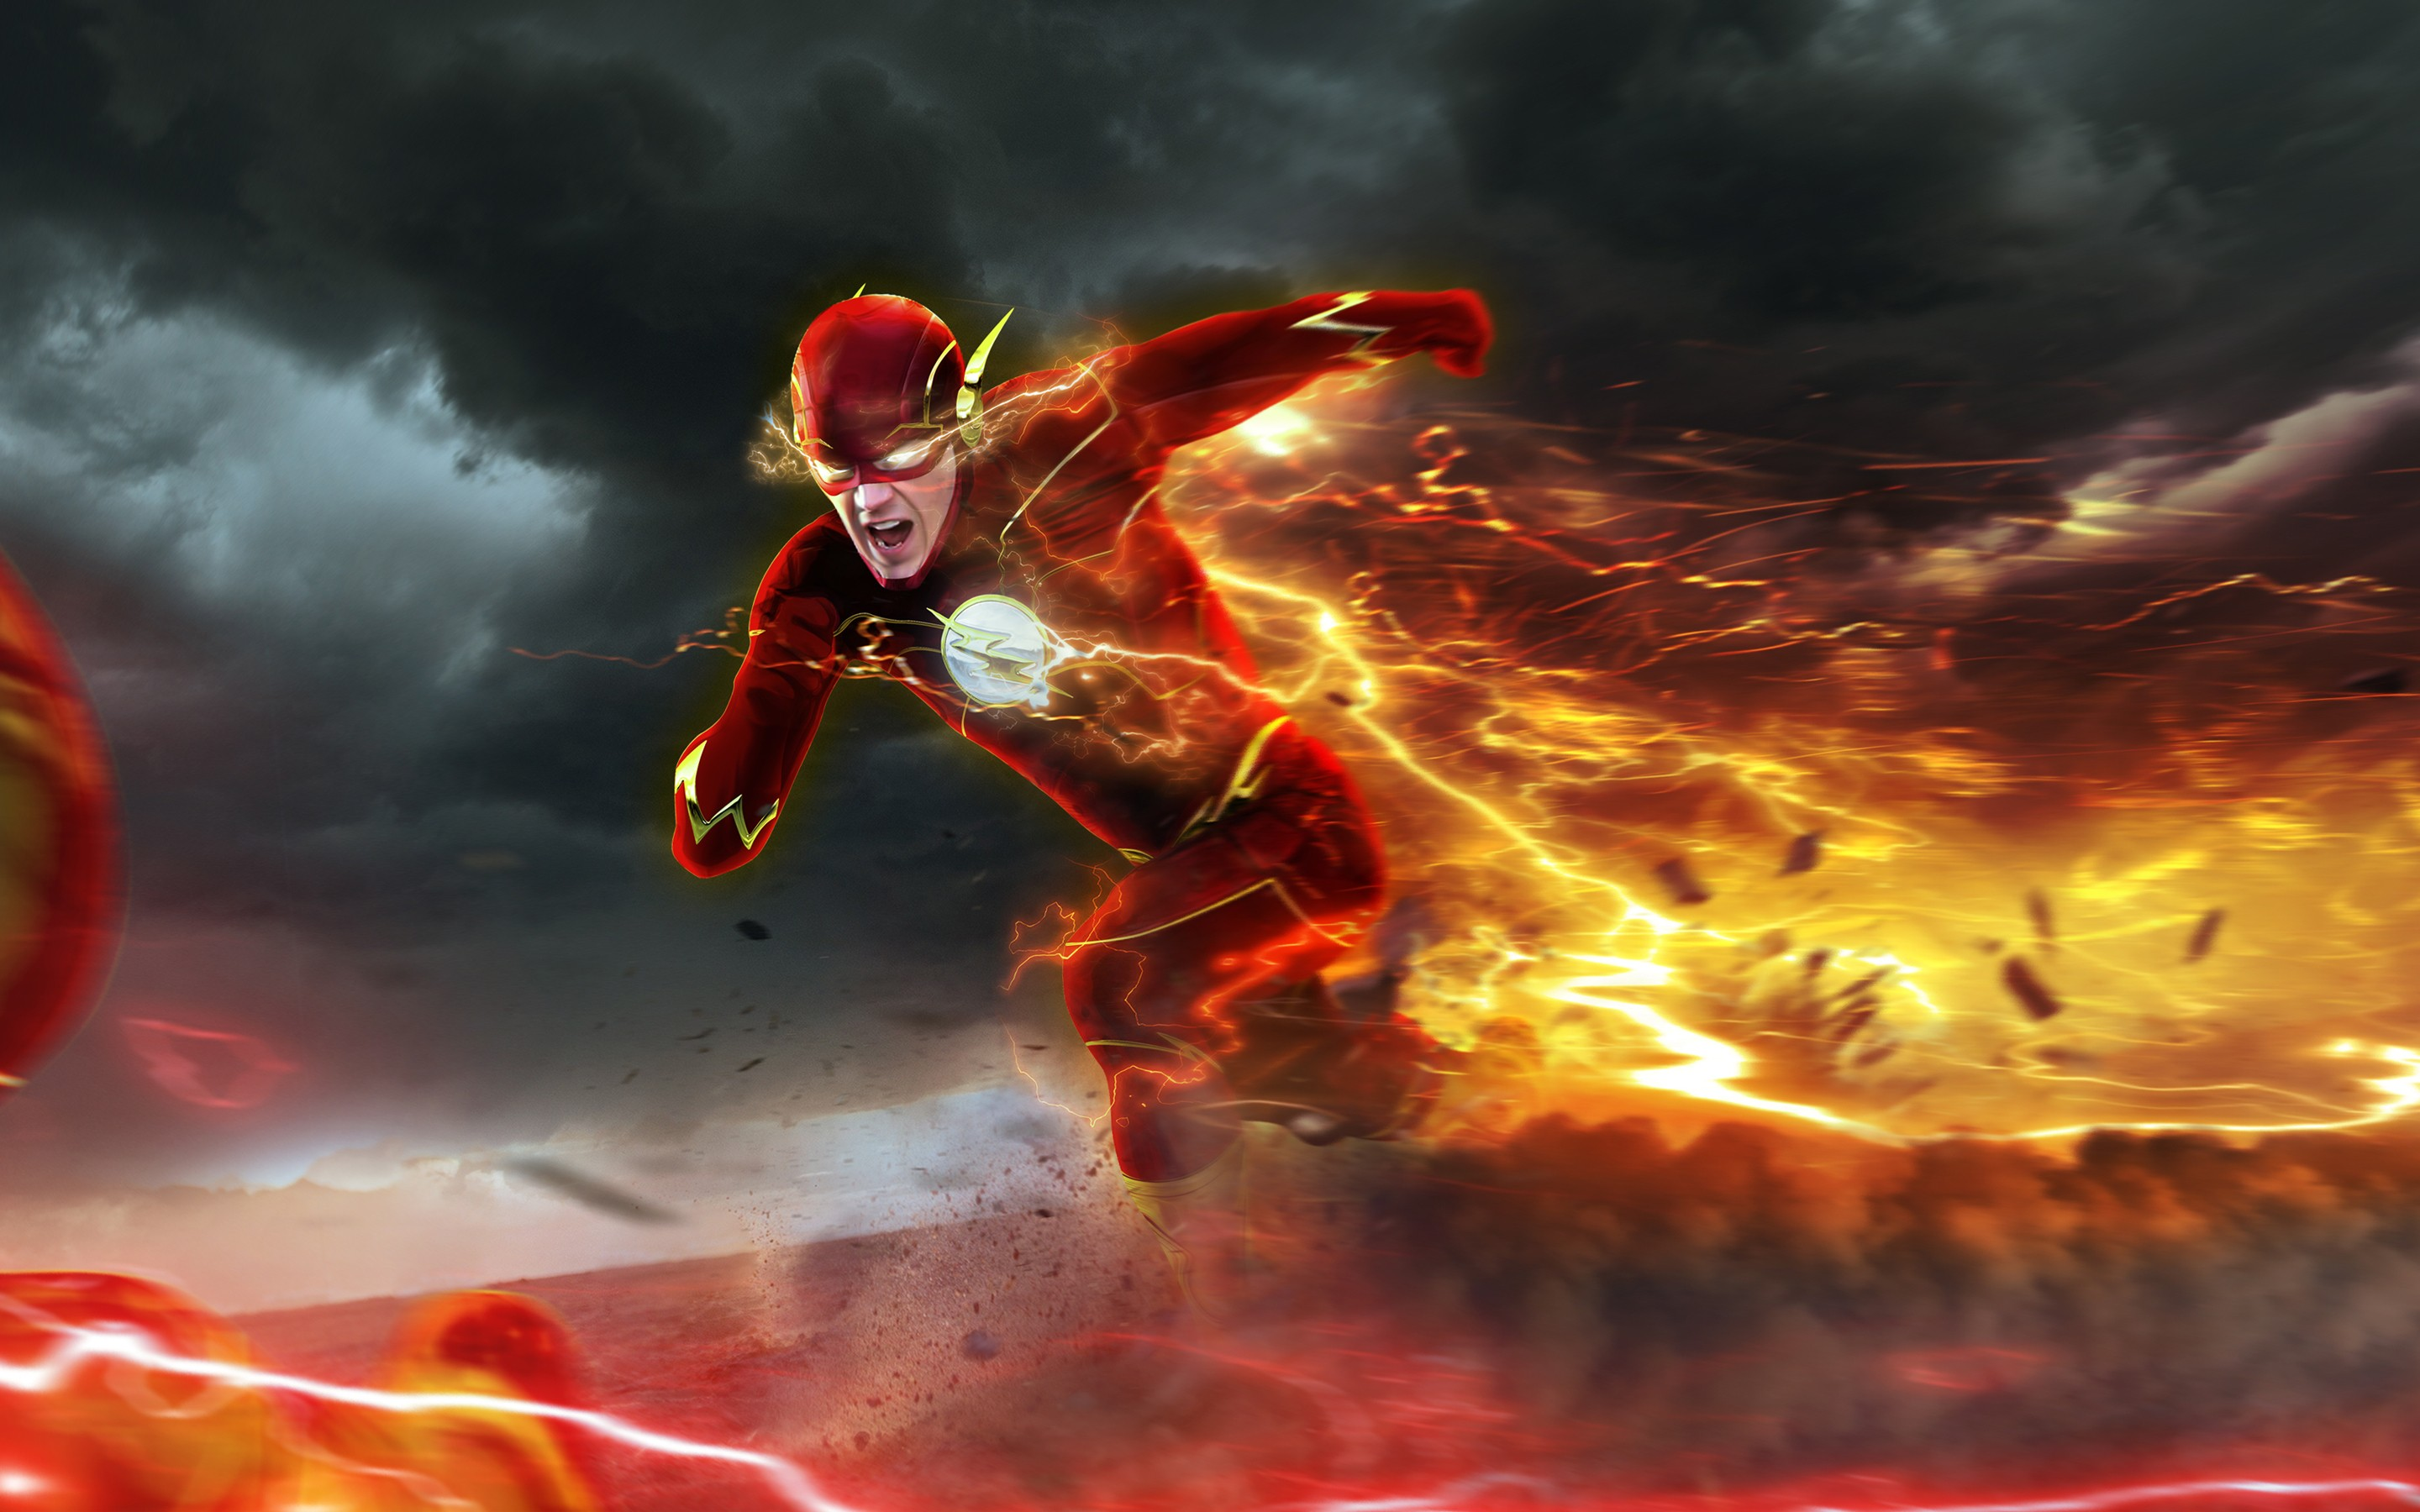 barry allen in flash, hd tv shows, 4k wallpapers, images